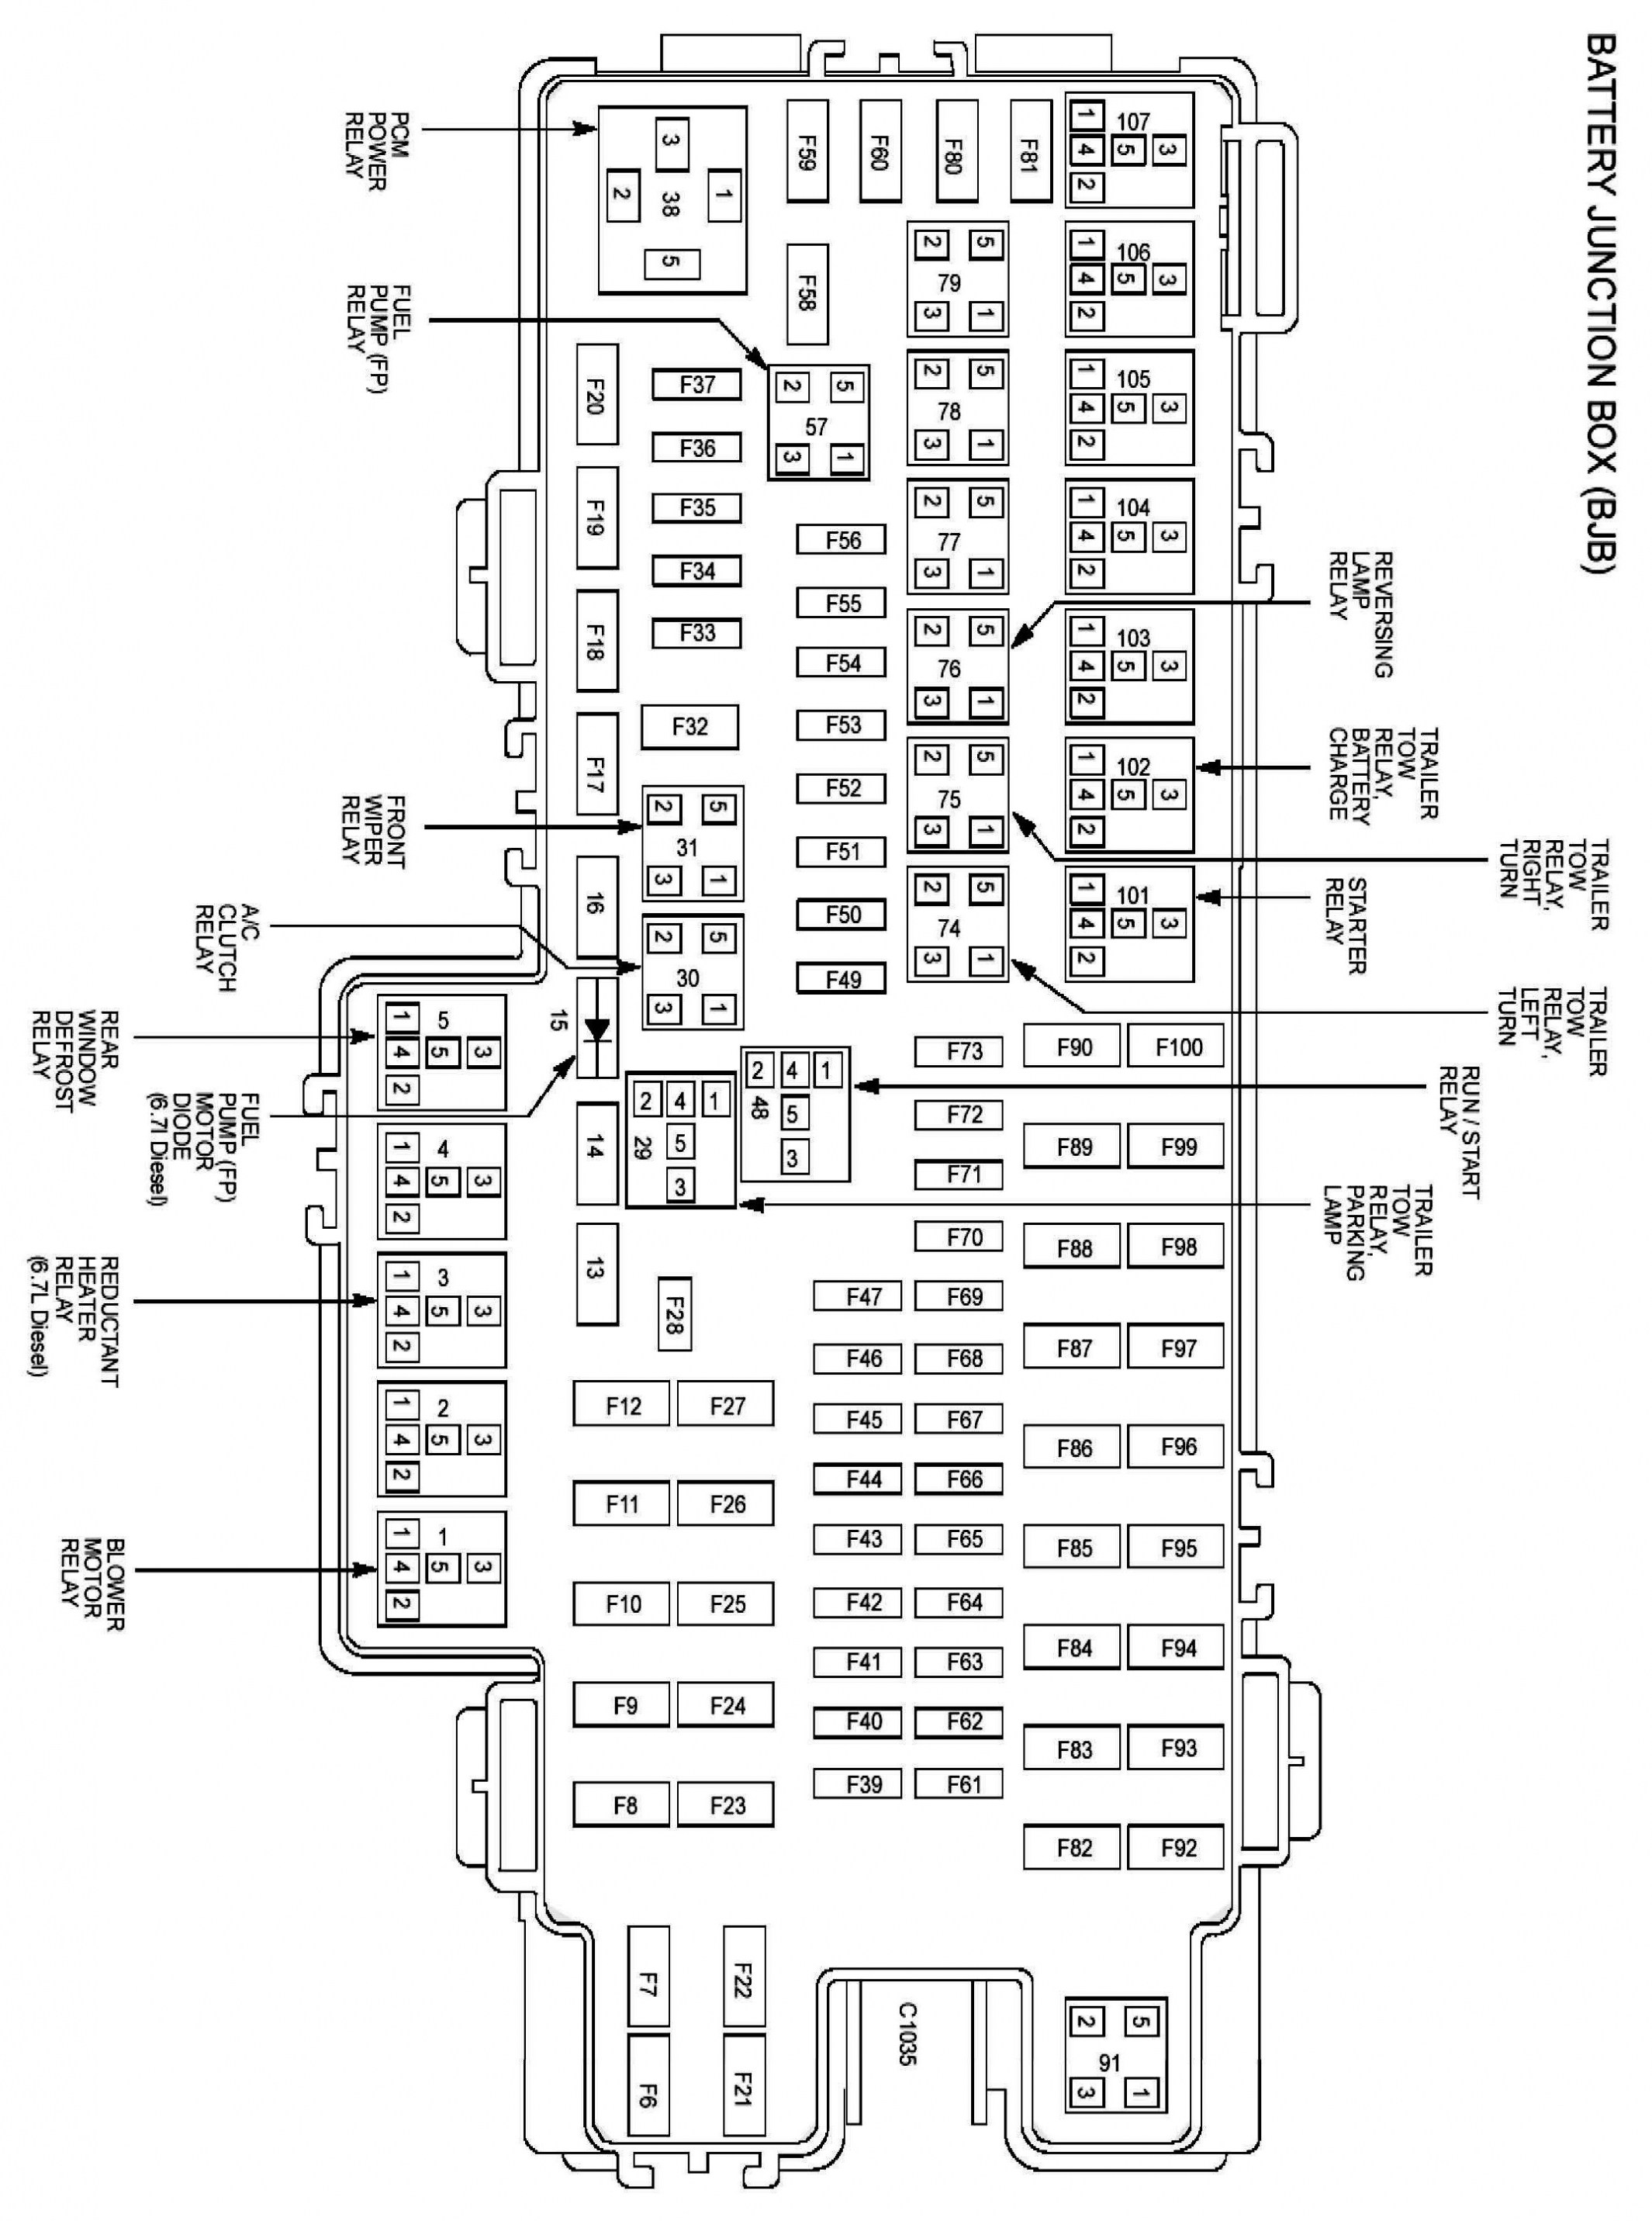 2012 Ford F250 Fuse Diagram -Wiring Diagrams For 1949 Chevy Truck | Begeboy Wiring  Diagram SourceBegeboy Wiring Diagram Source